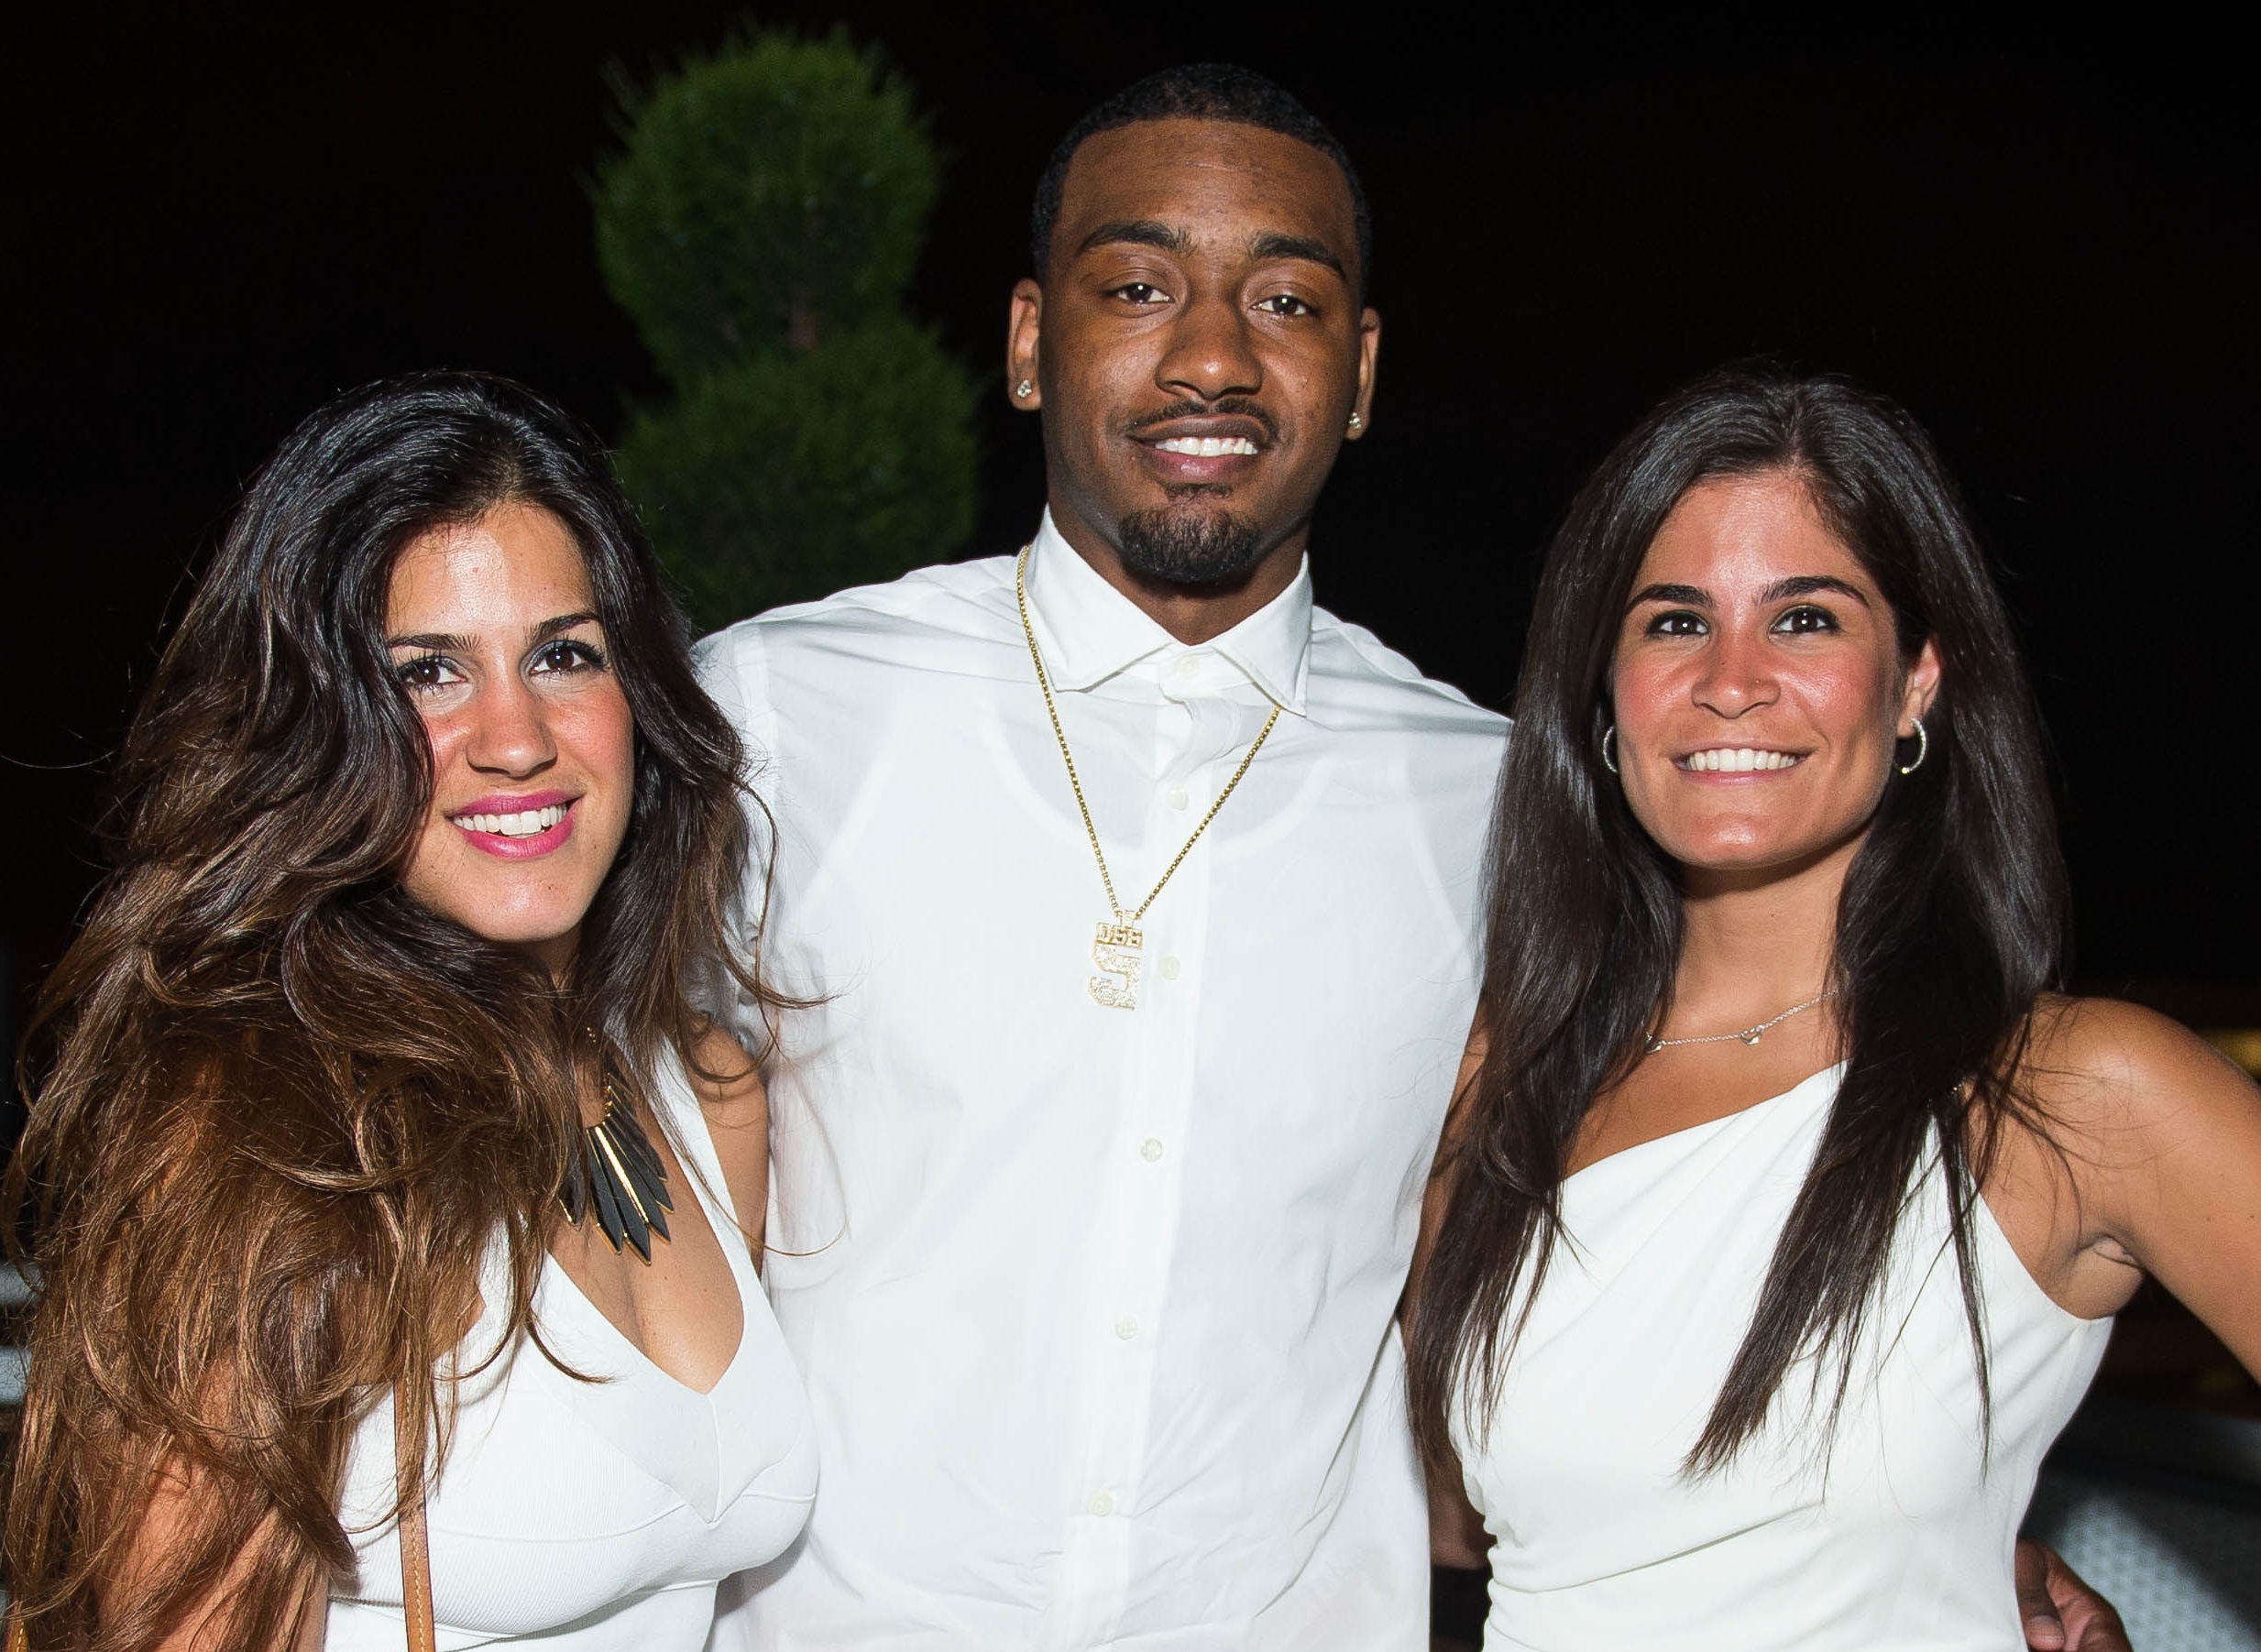 MoKi Media Dannia Hakki and Maha Hakki surround Washington Wizard John Wall by Joy Asico